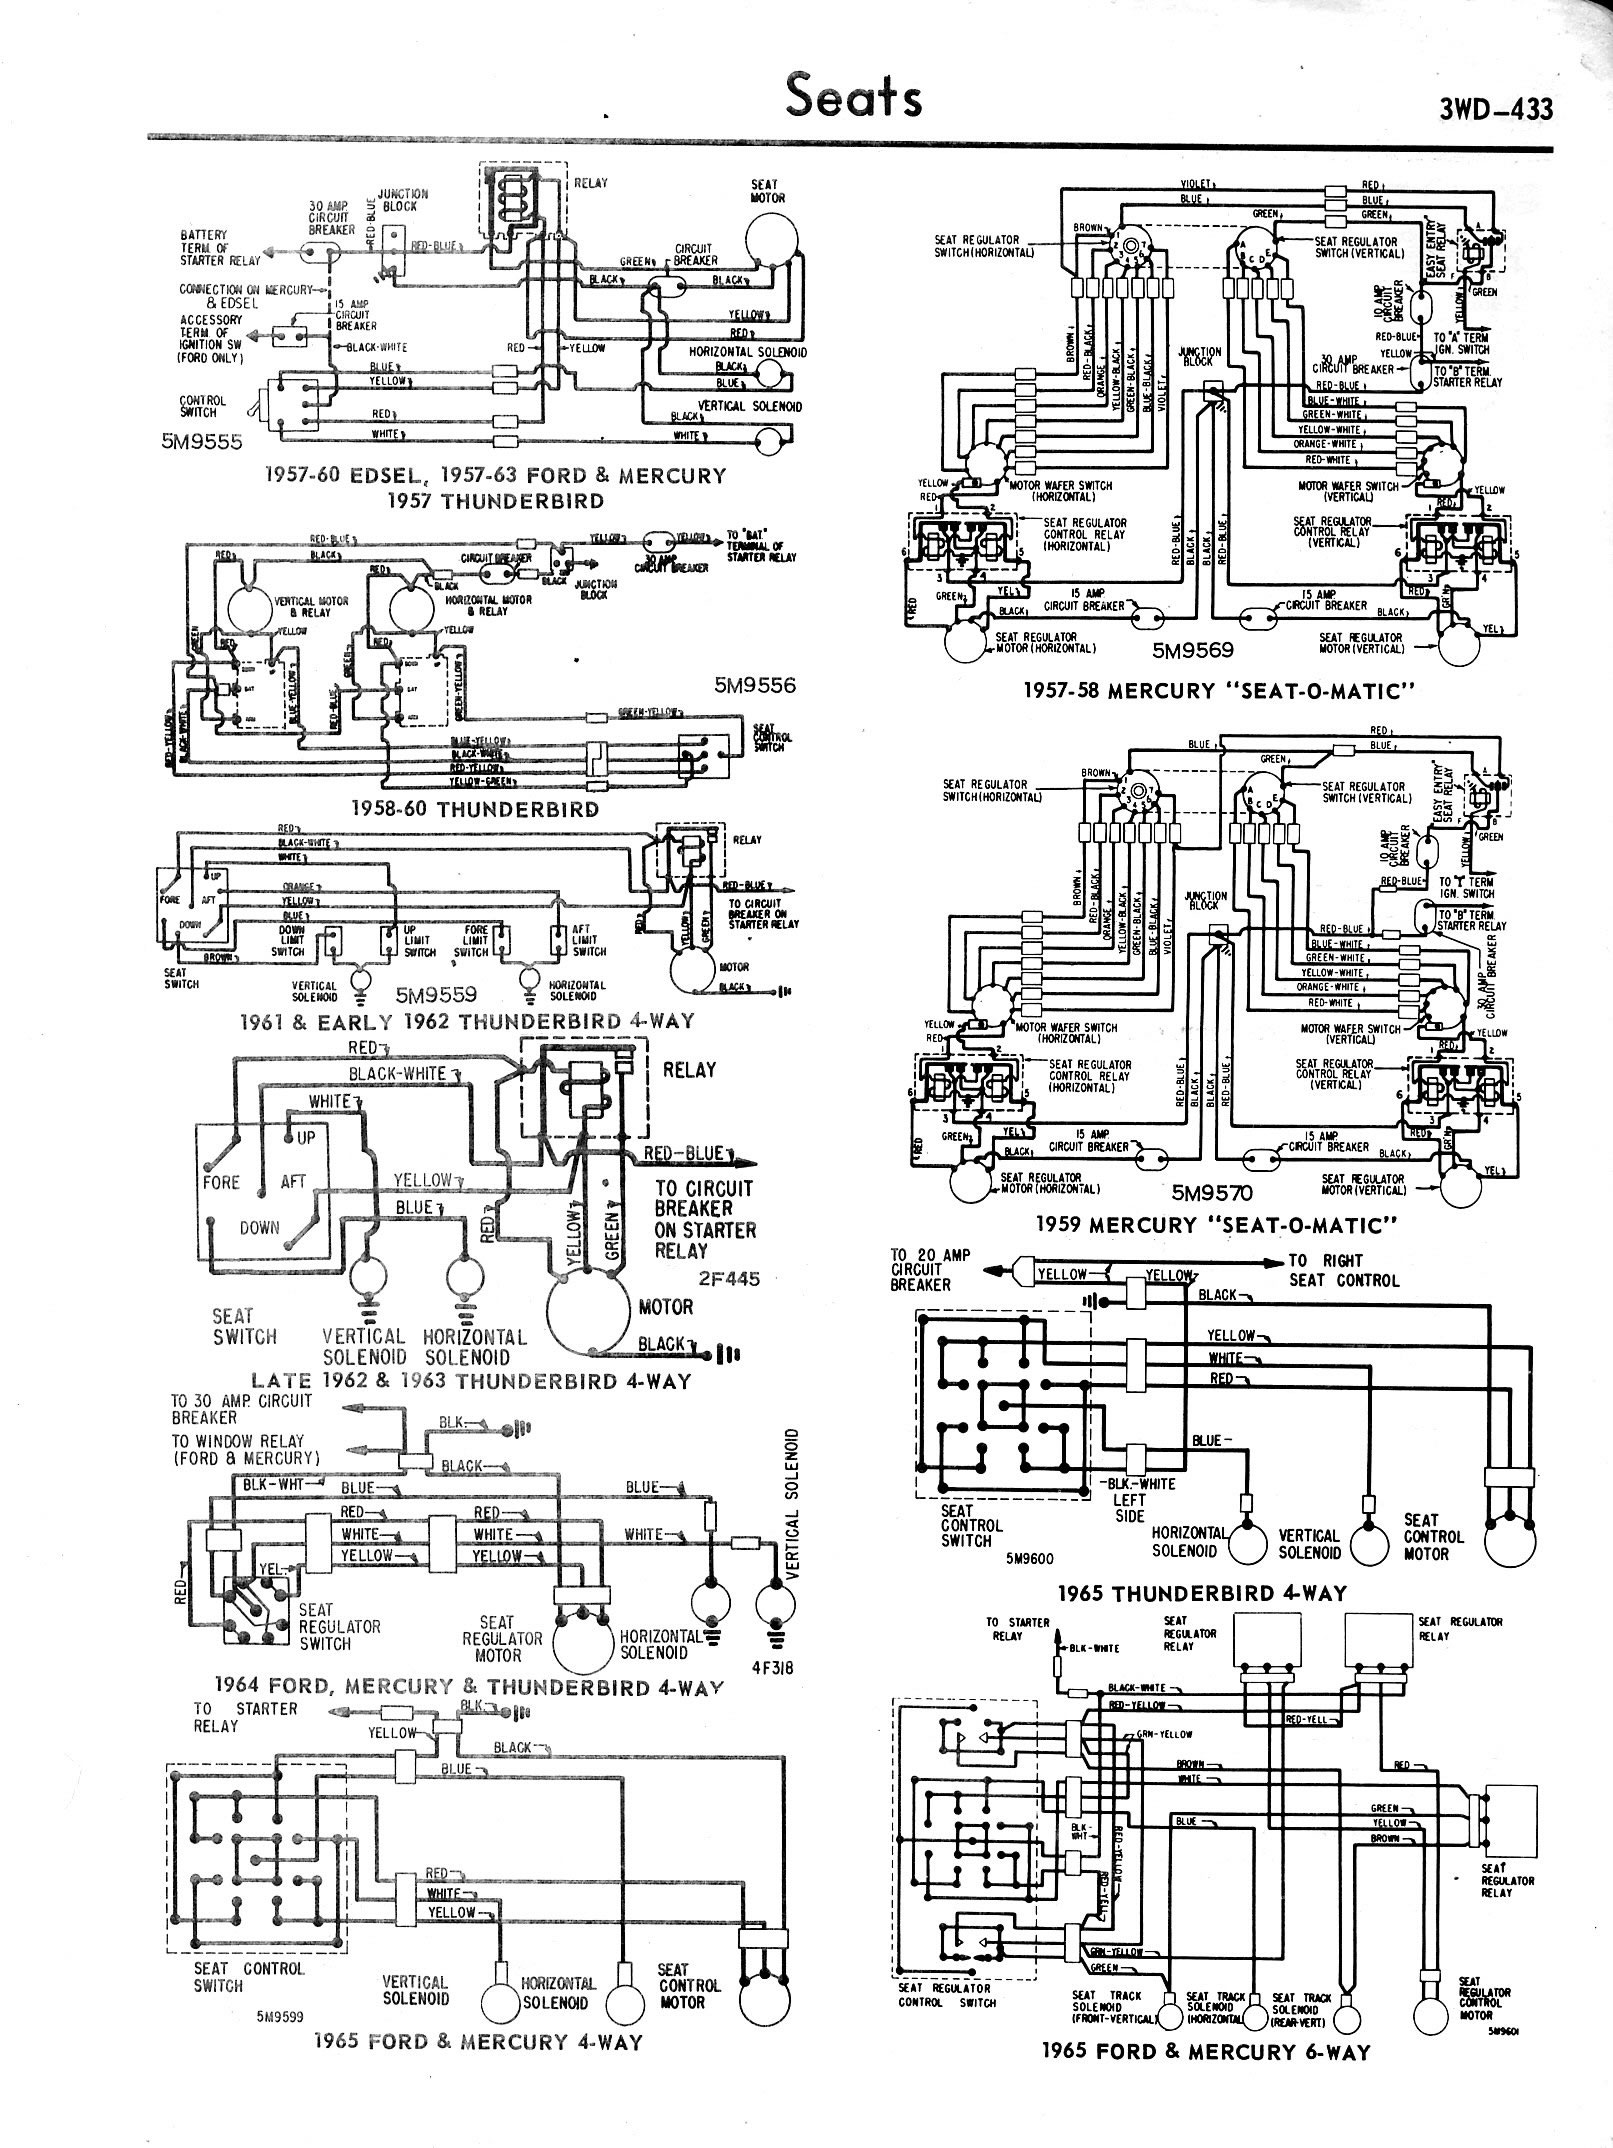 ford diagrams rh wiring wizard com 1955 Ford Thunderbird Wiring Diagram 57 Thunderbird  Wiring Diagram